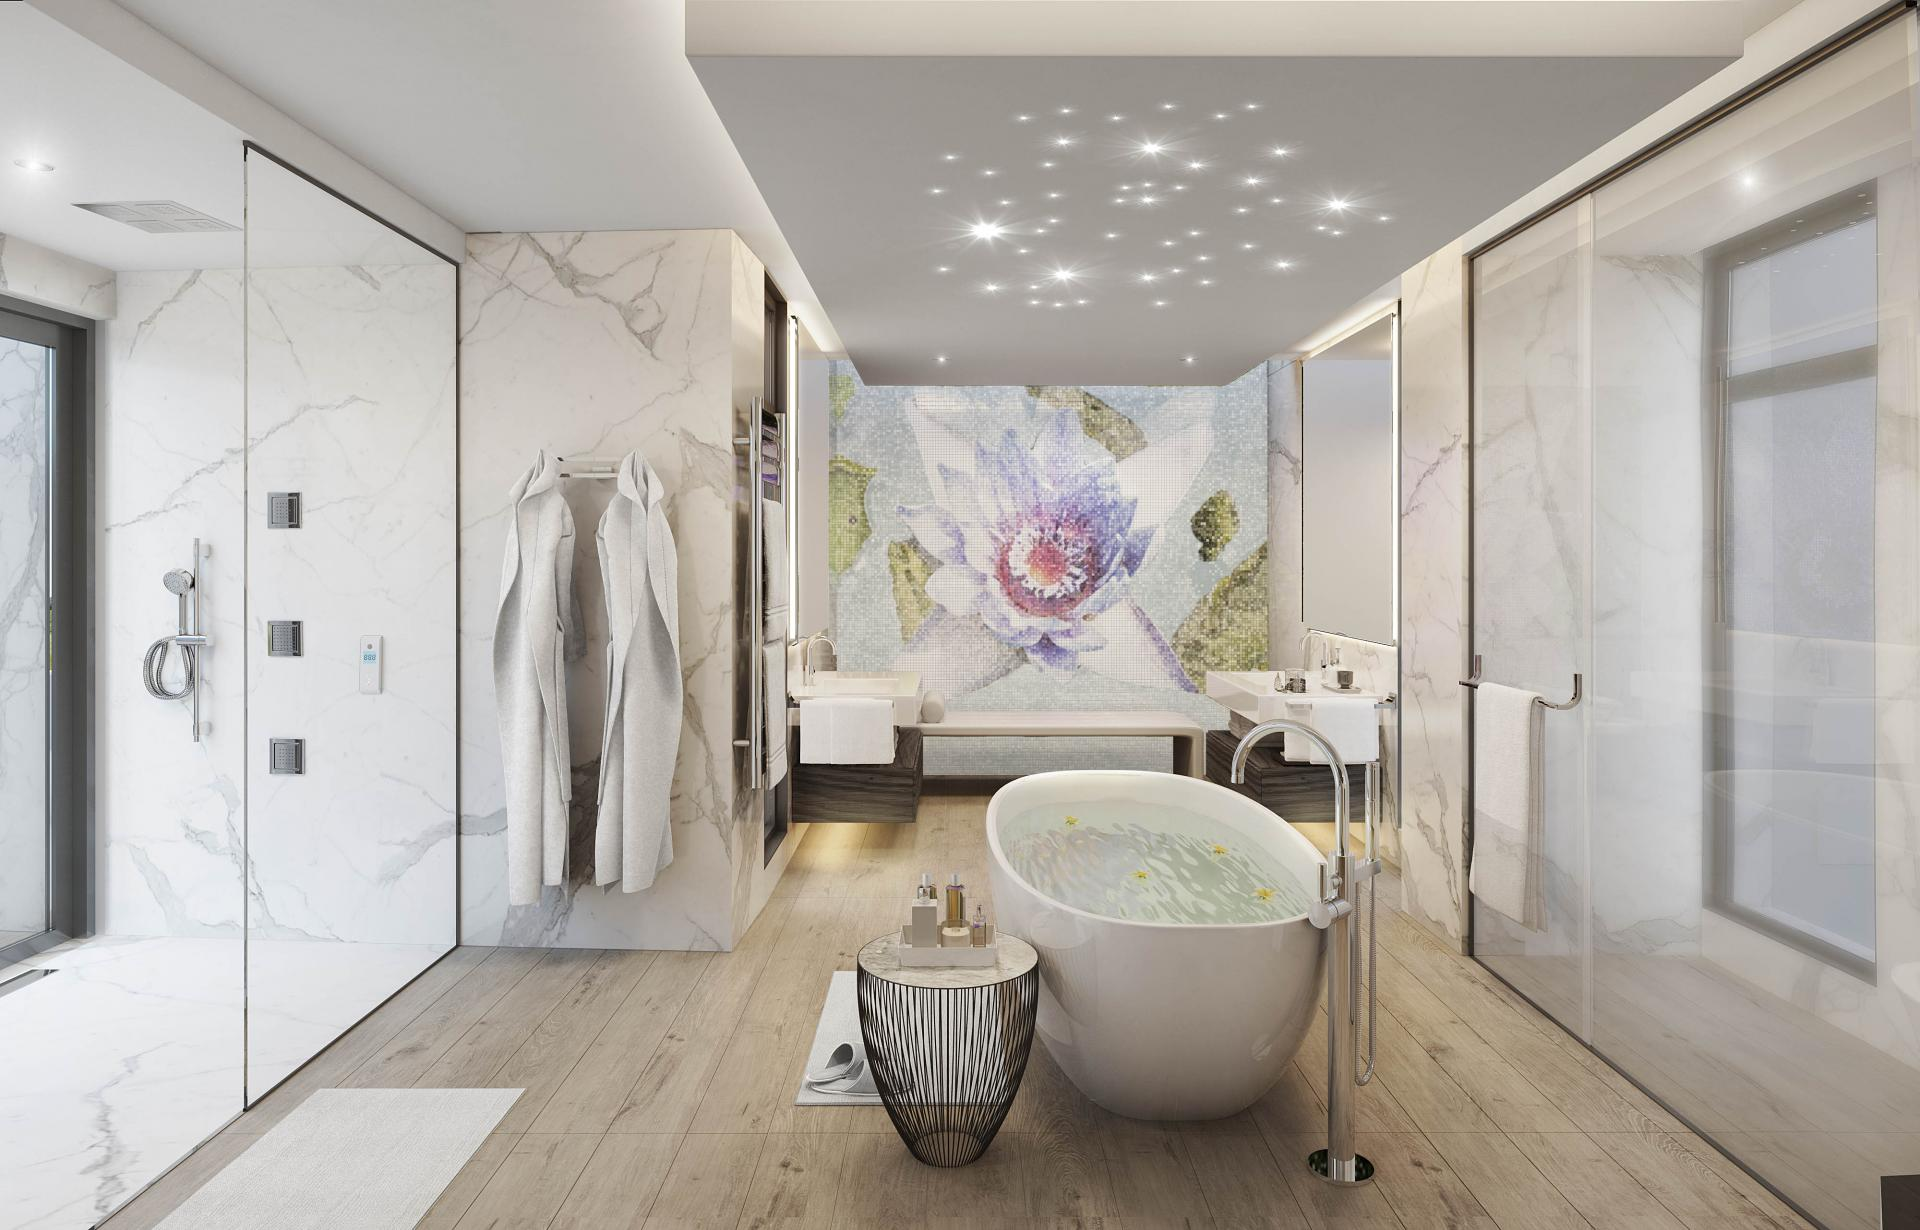 wonderful beautiful master bathroom | Top 10 beautiful bathrooms from around the world - Blog